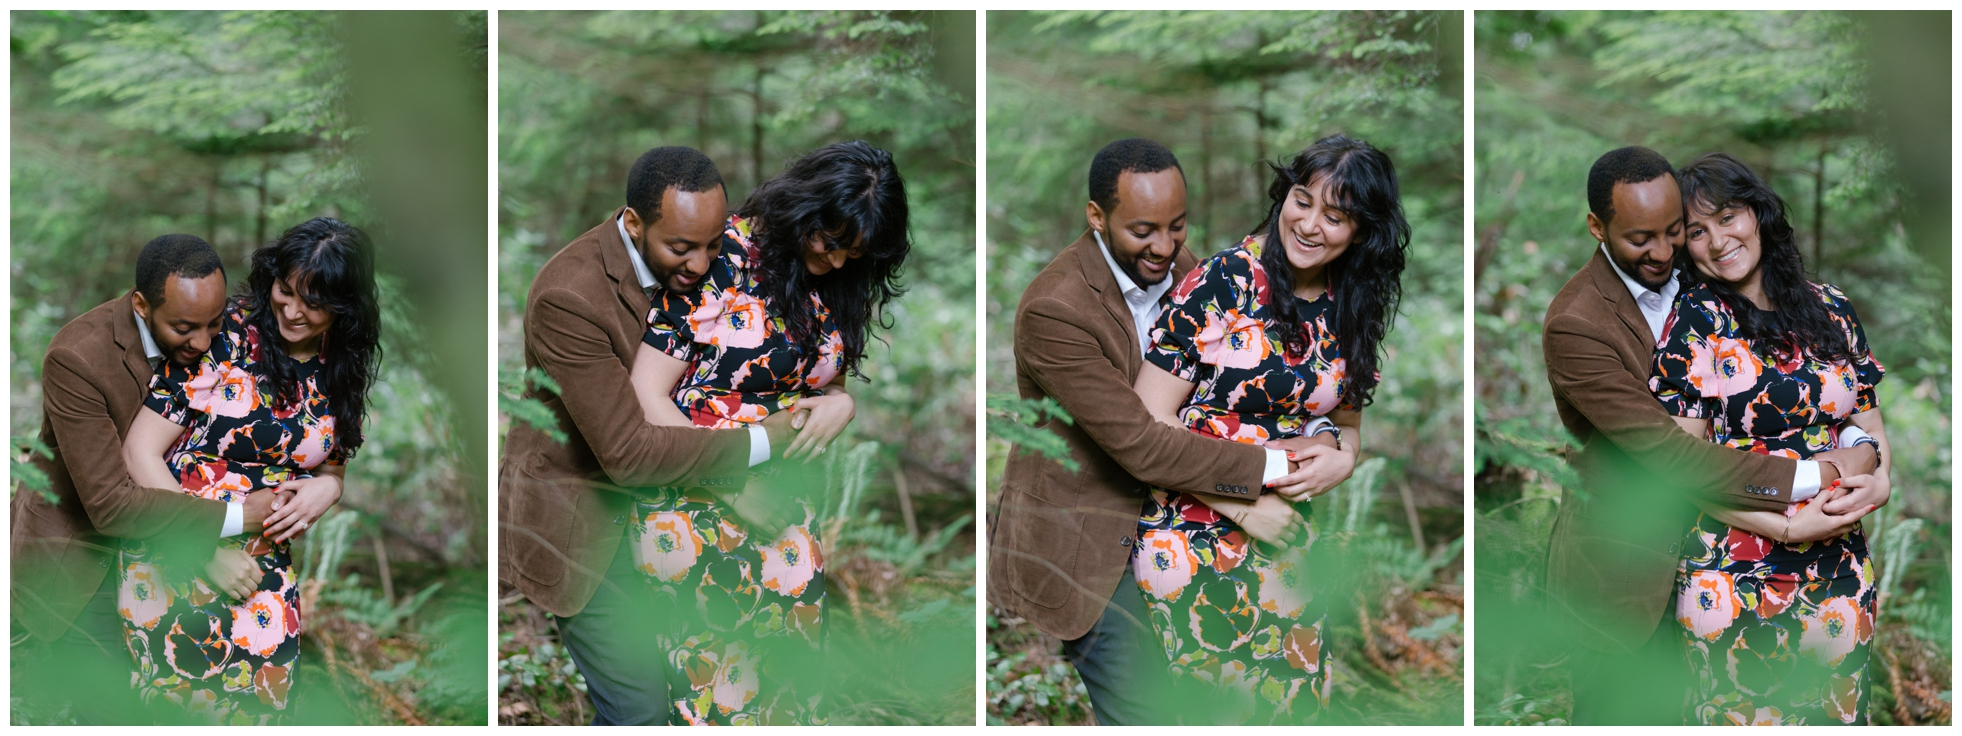 Tara and Petros Engagement Session (Life by Selena Photography)_0056.jpg